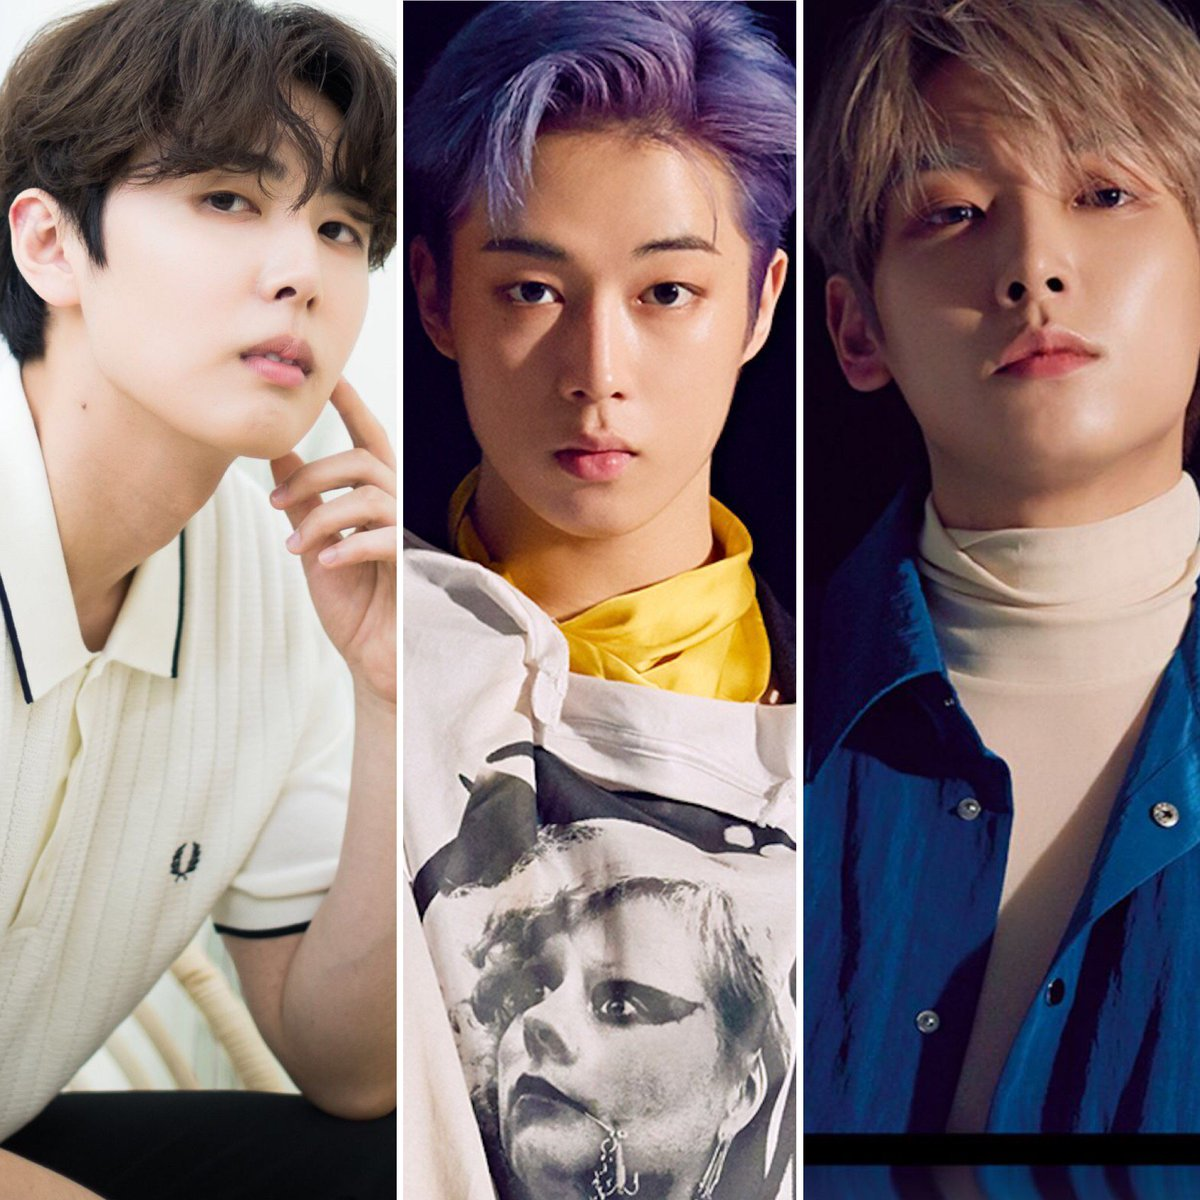 #NEWS: While @SF9official's In Seong recovers from his injury, his band mates Jaeyoon and Dawon will step in as special MCs to co-host #WeKPop during his absence. These episodes, which include guests like Weki Meki and Rocket Punch, film next week.<br>http://pic.twitter.com/rRiY0F5zHC